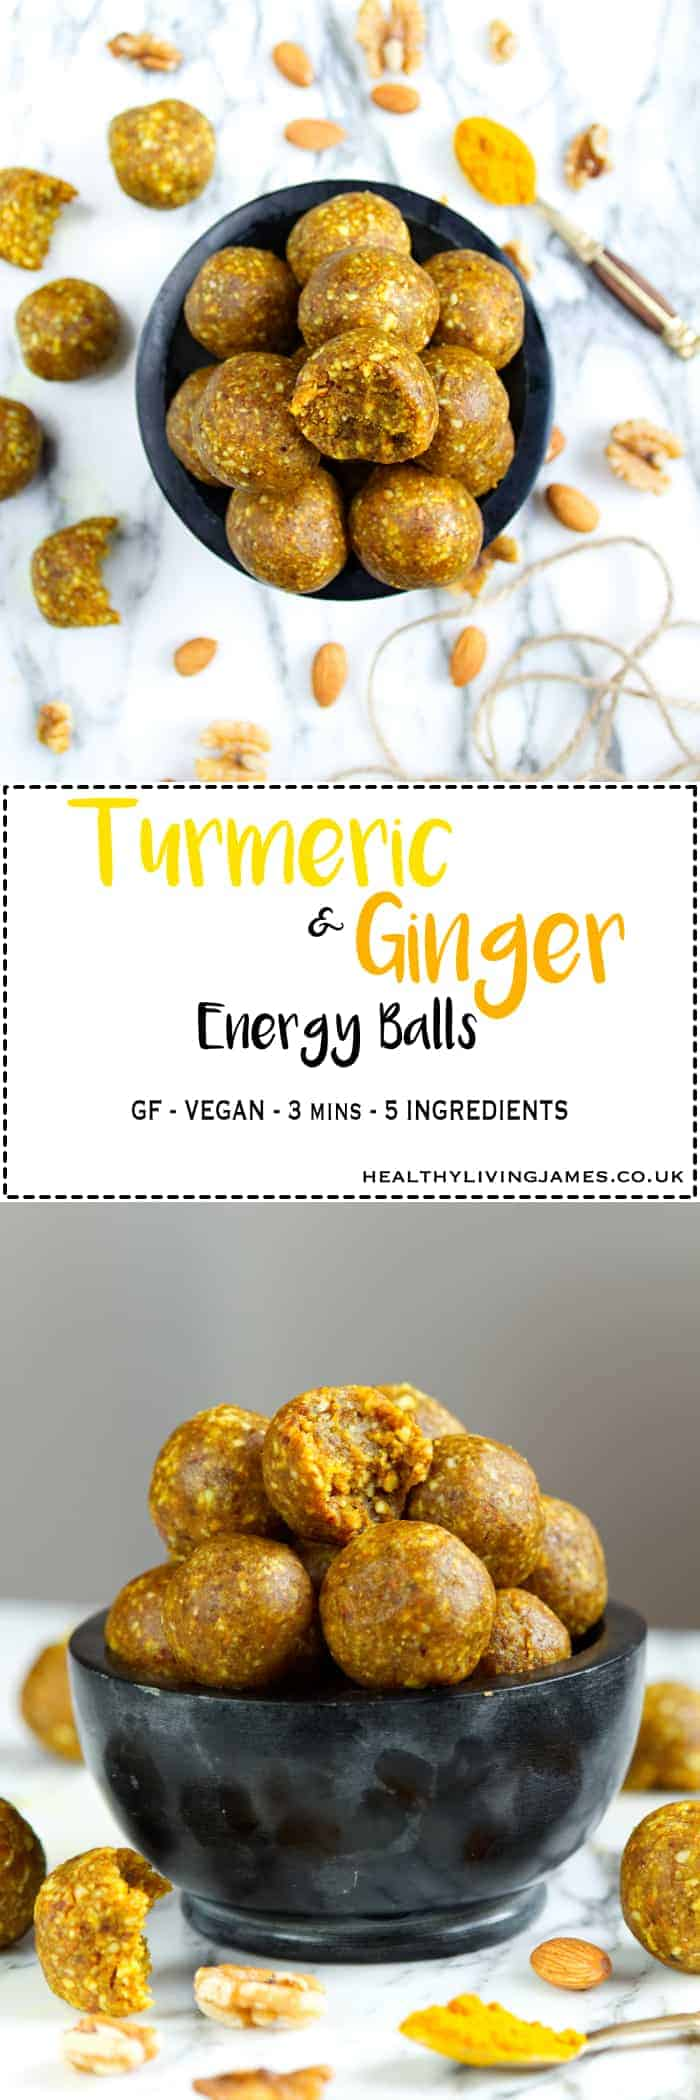 Turmeric & Ginger Energy Balls - Naturally gluten free, vegan and refined sugar free. The perfect quick, healthy and nutritious snack for on the go.